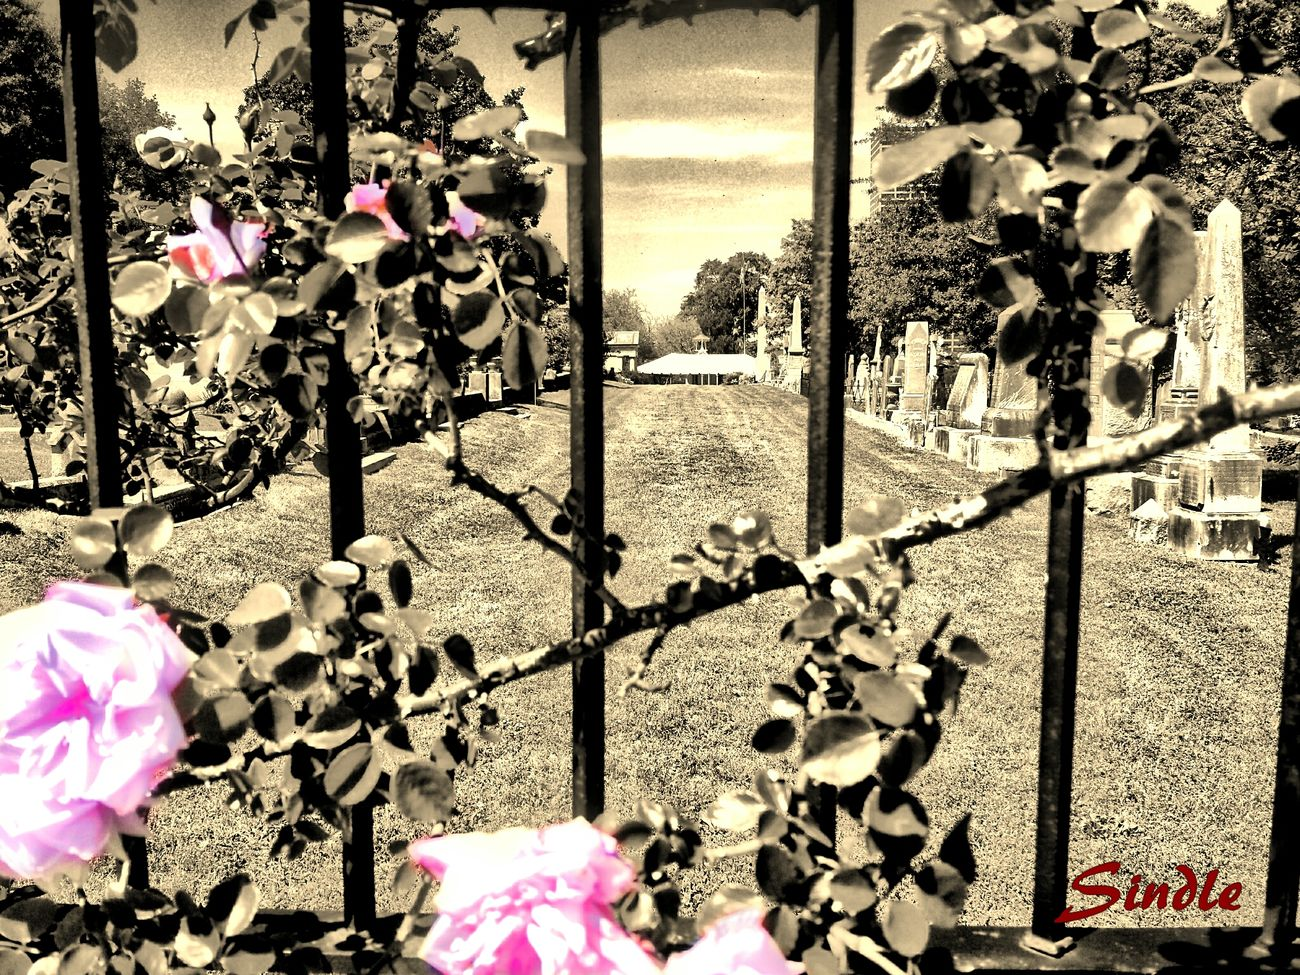 The real death row Cemeteryscape Photo Manipulation Flower Fantasy Dark Art